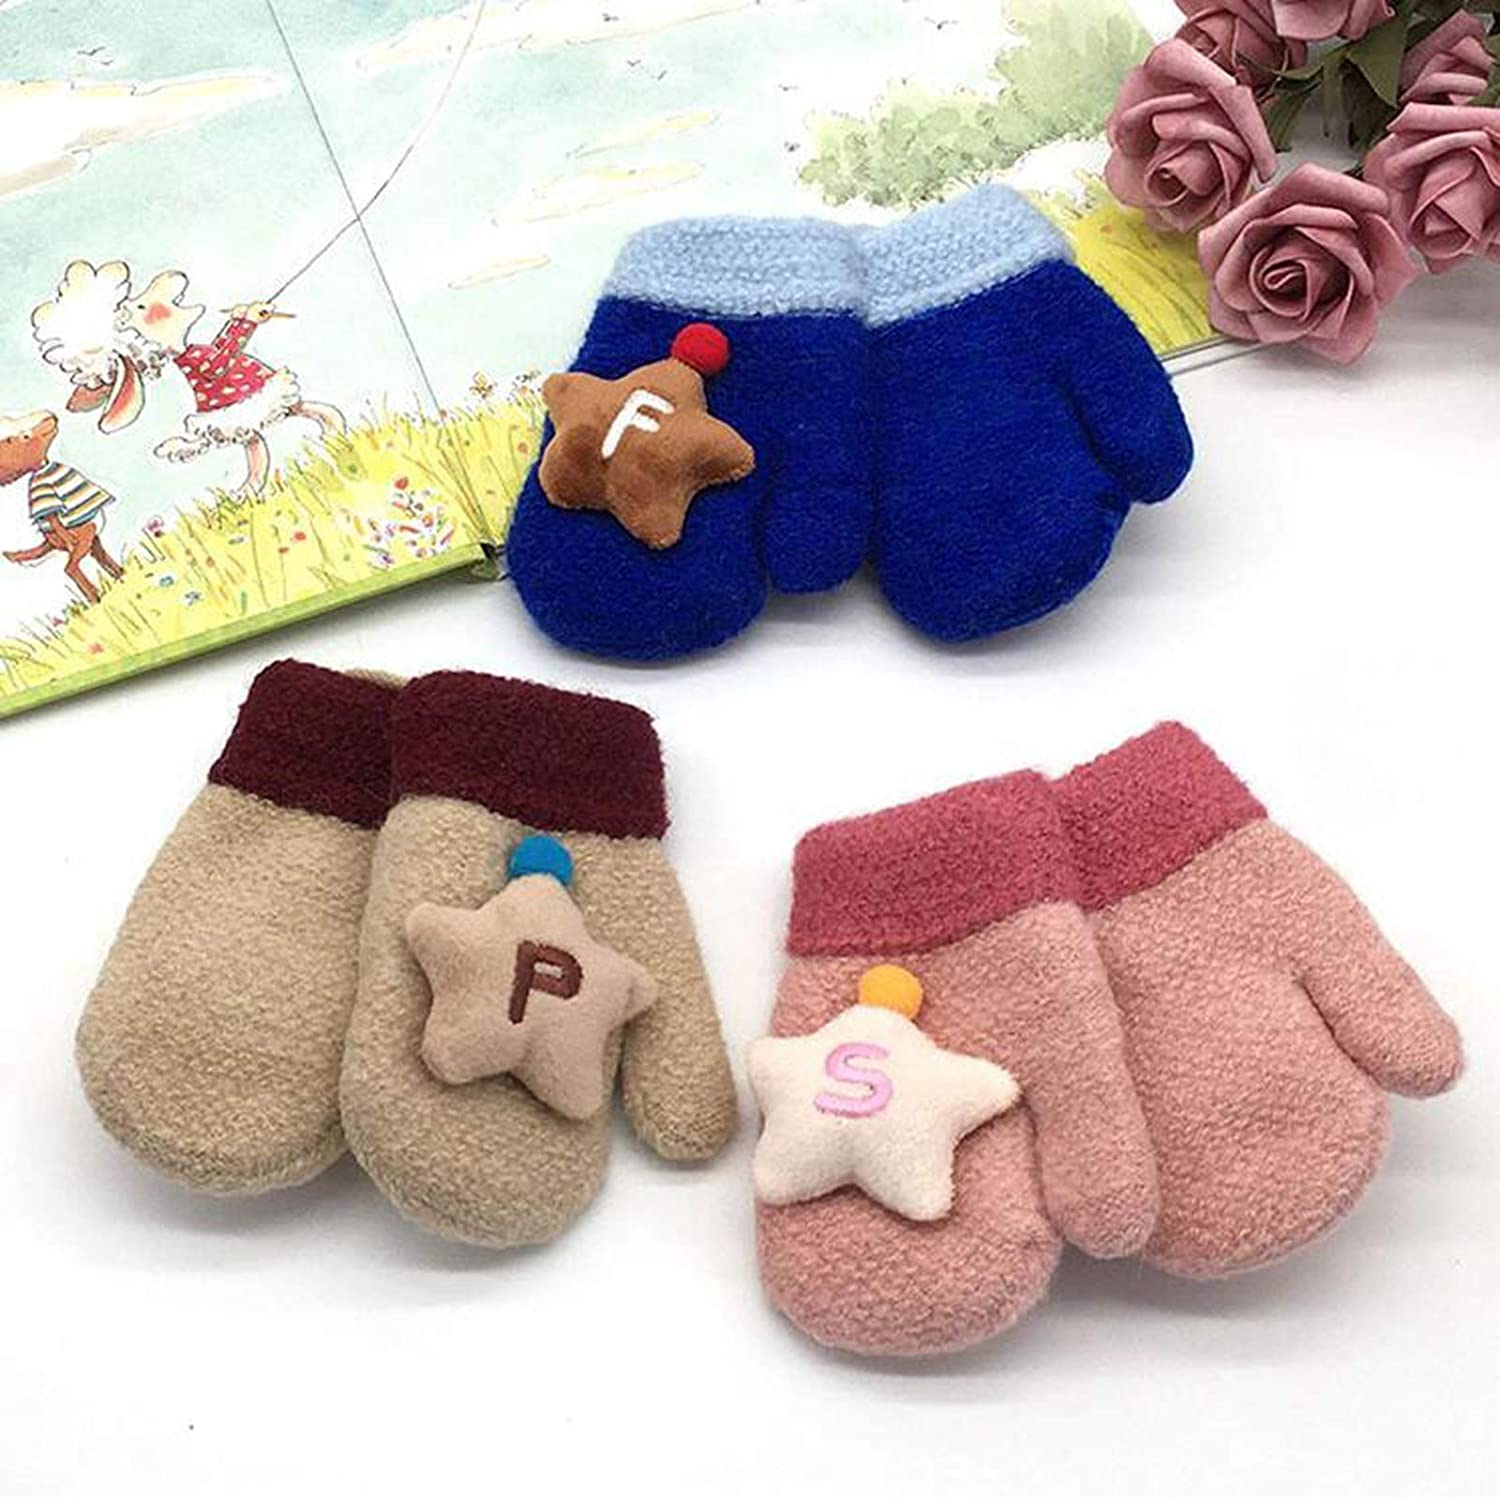 Girls Mittens, Star Chunky Plush Thermal Kids Cold Weather Gloves for Christmas Holiday Season